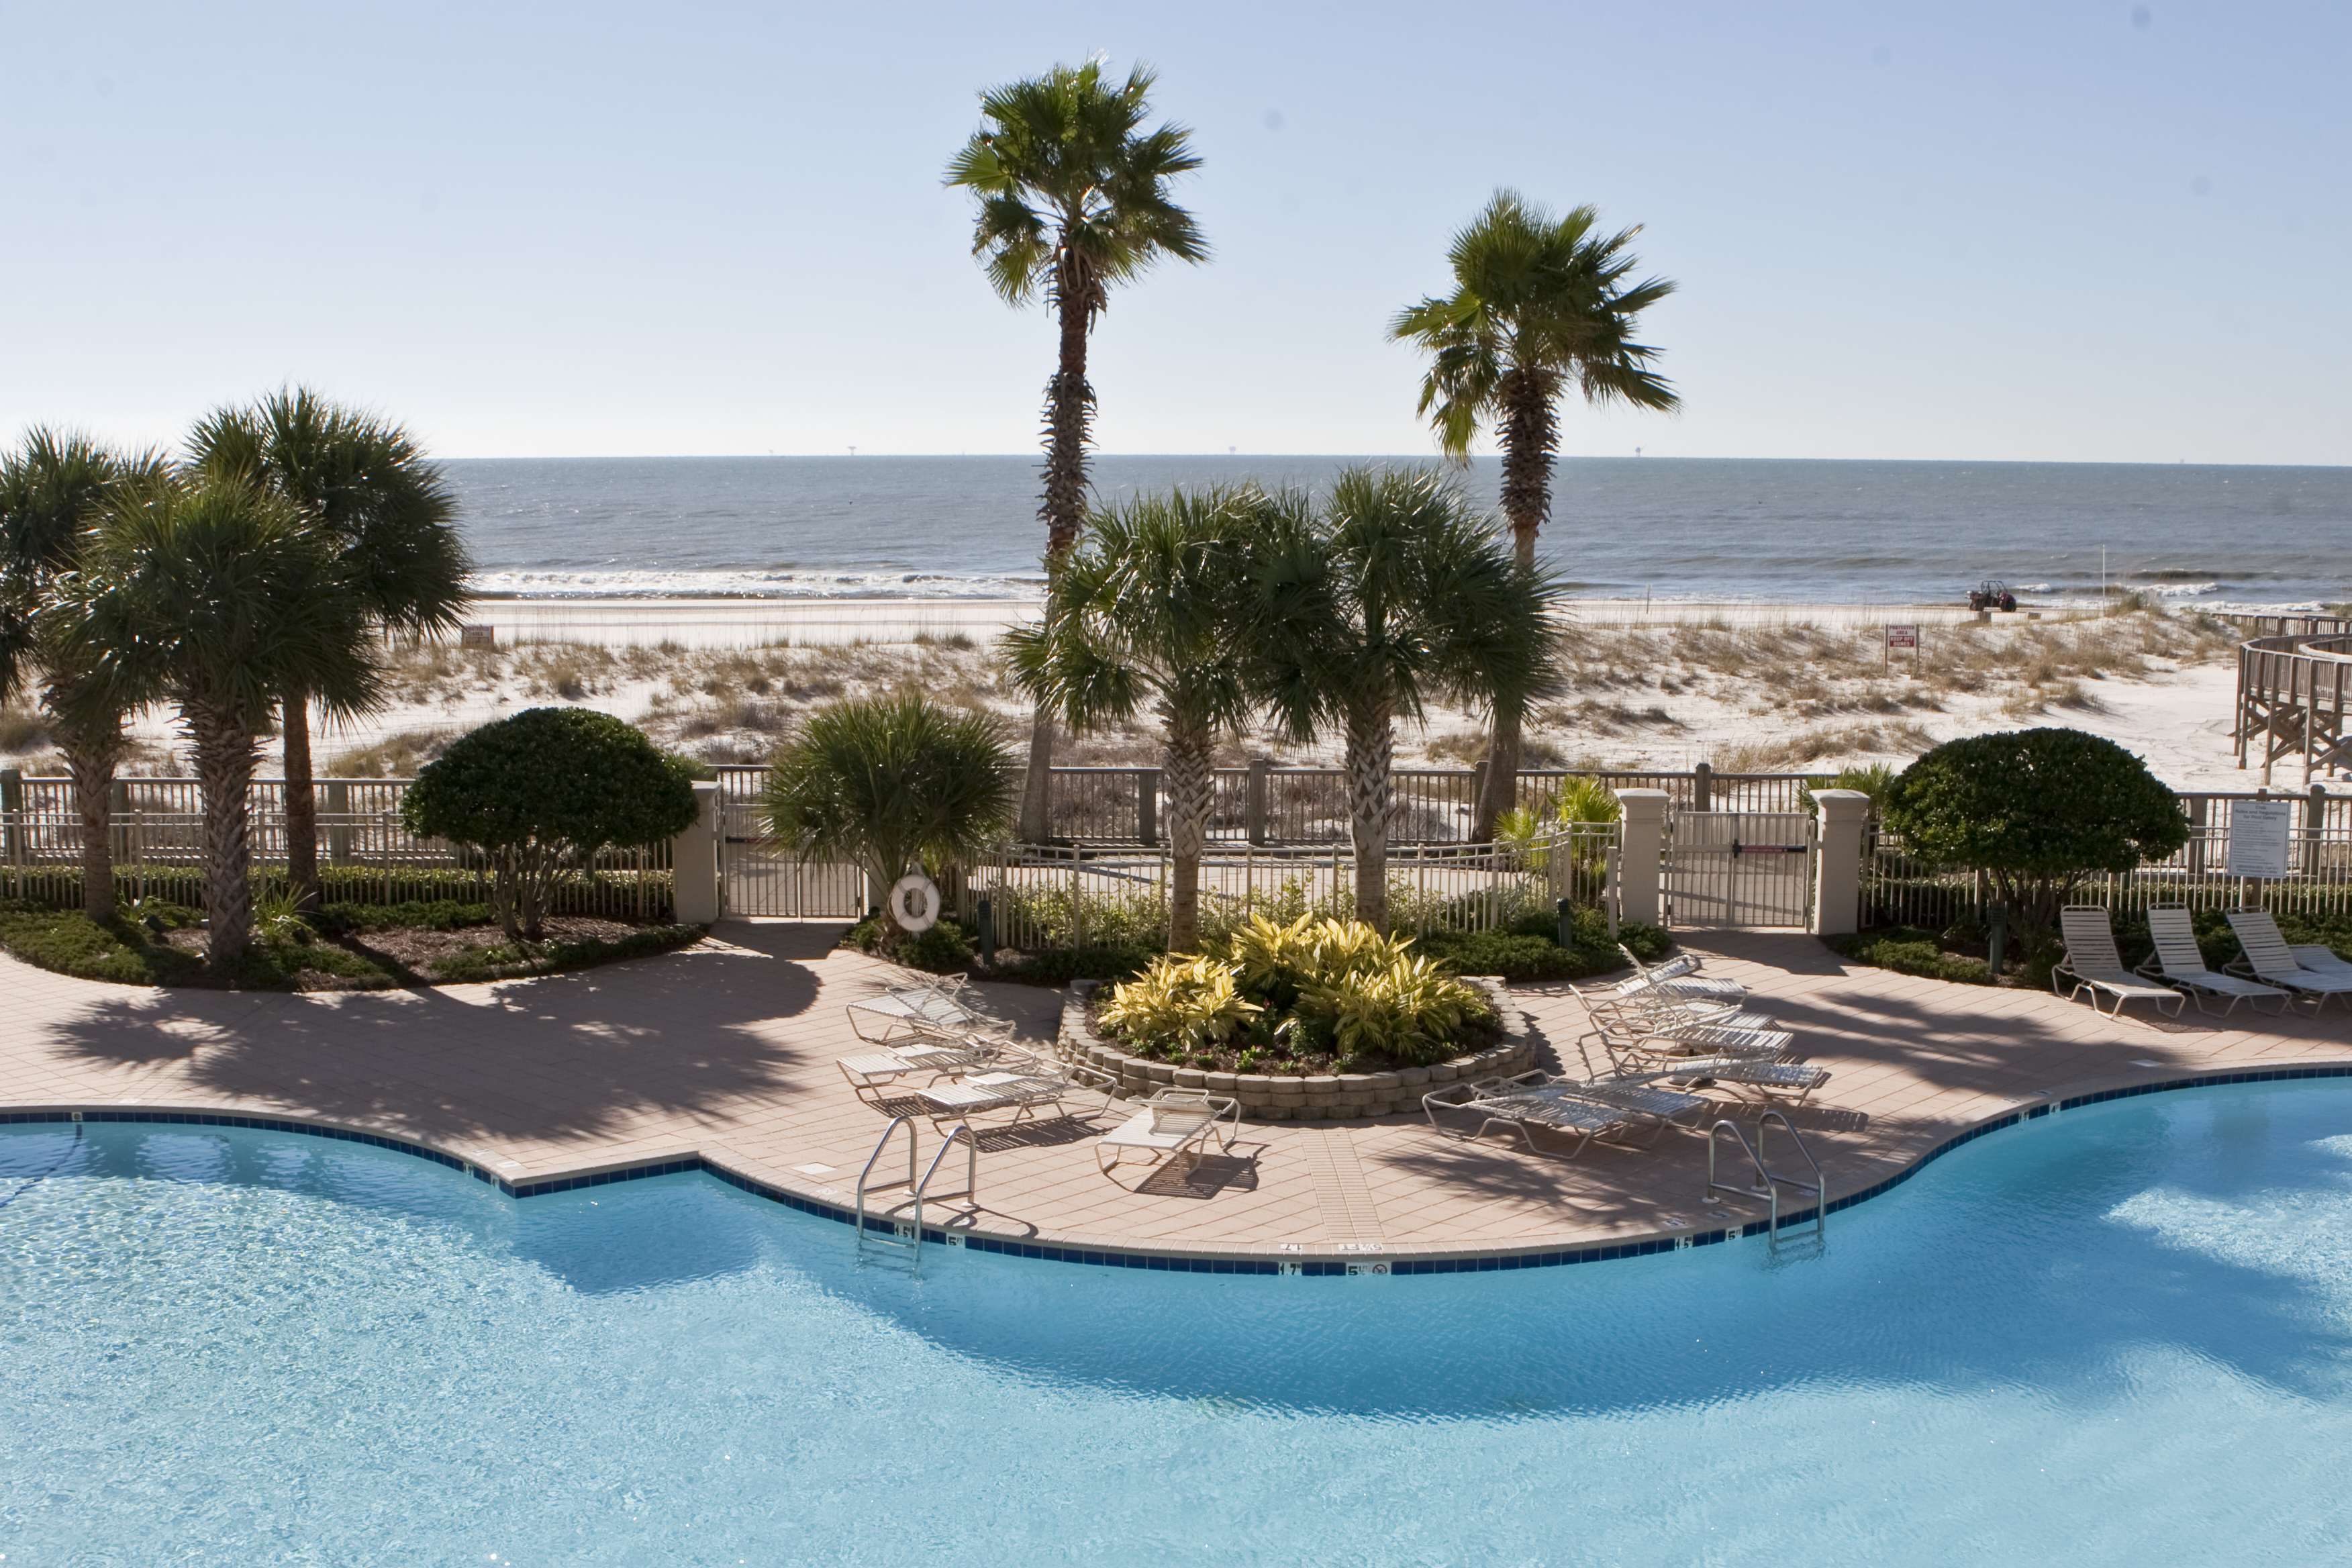 Top 10 Family Friendly Beach Resorts In The Southeast Club Gulf Ss